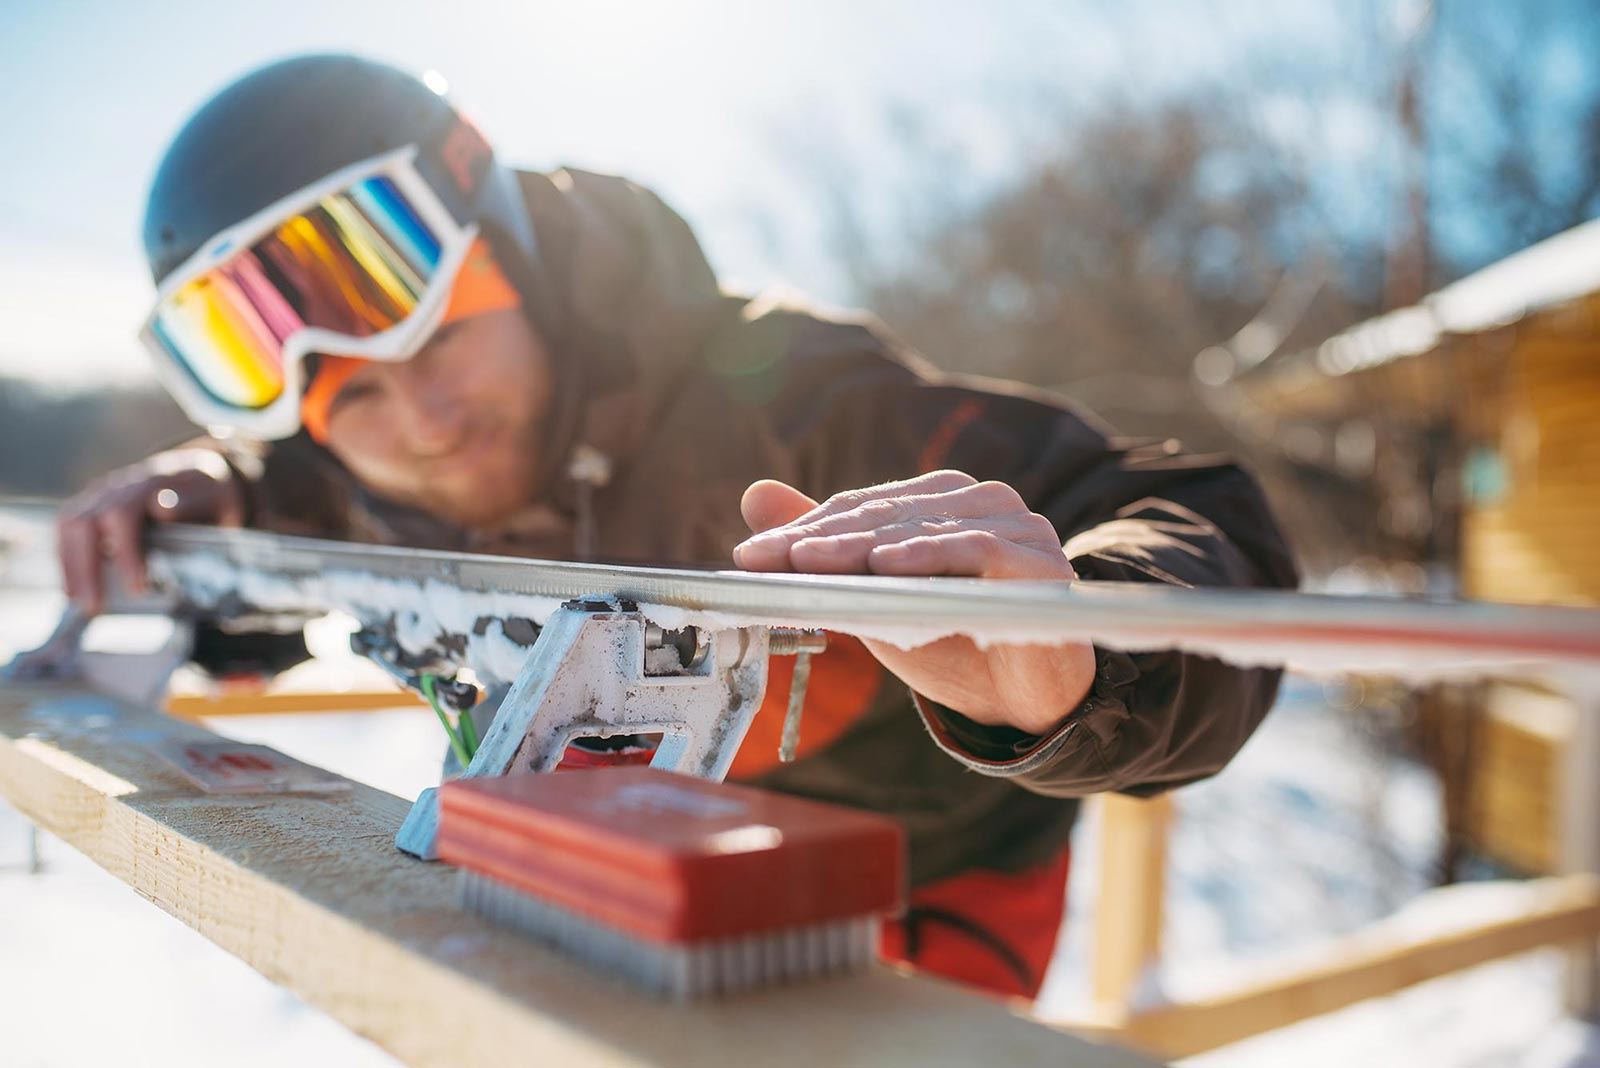 male skier checks skis before skiing winter sport PDBXVH6 - خانه اسکی